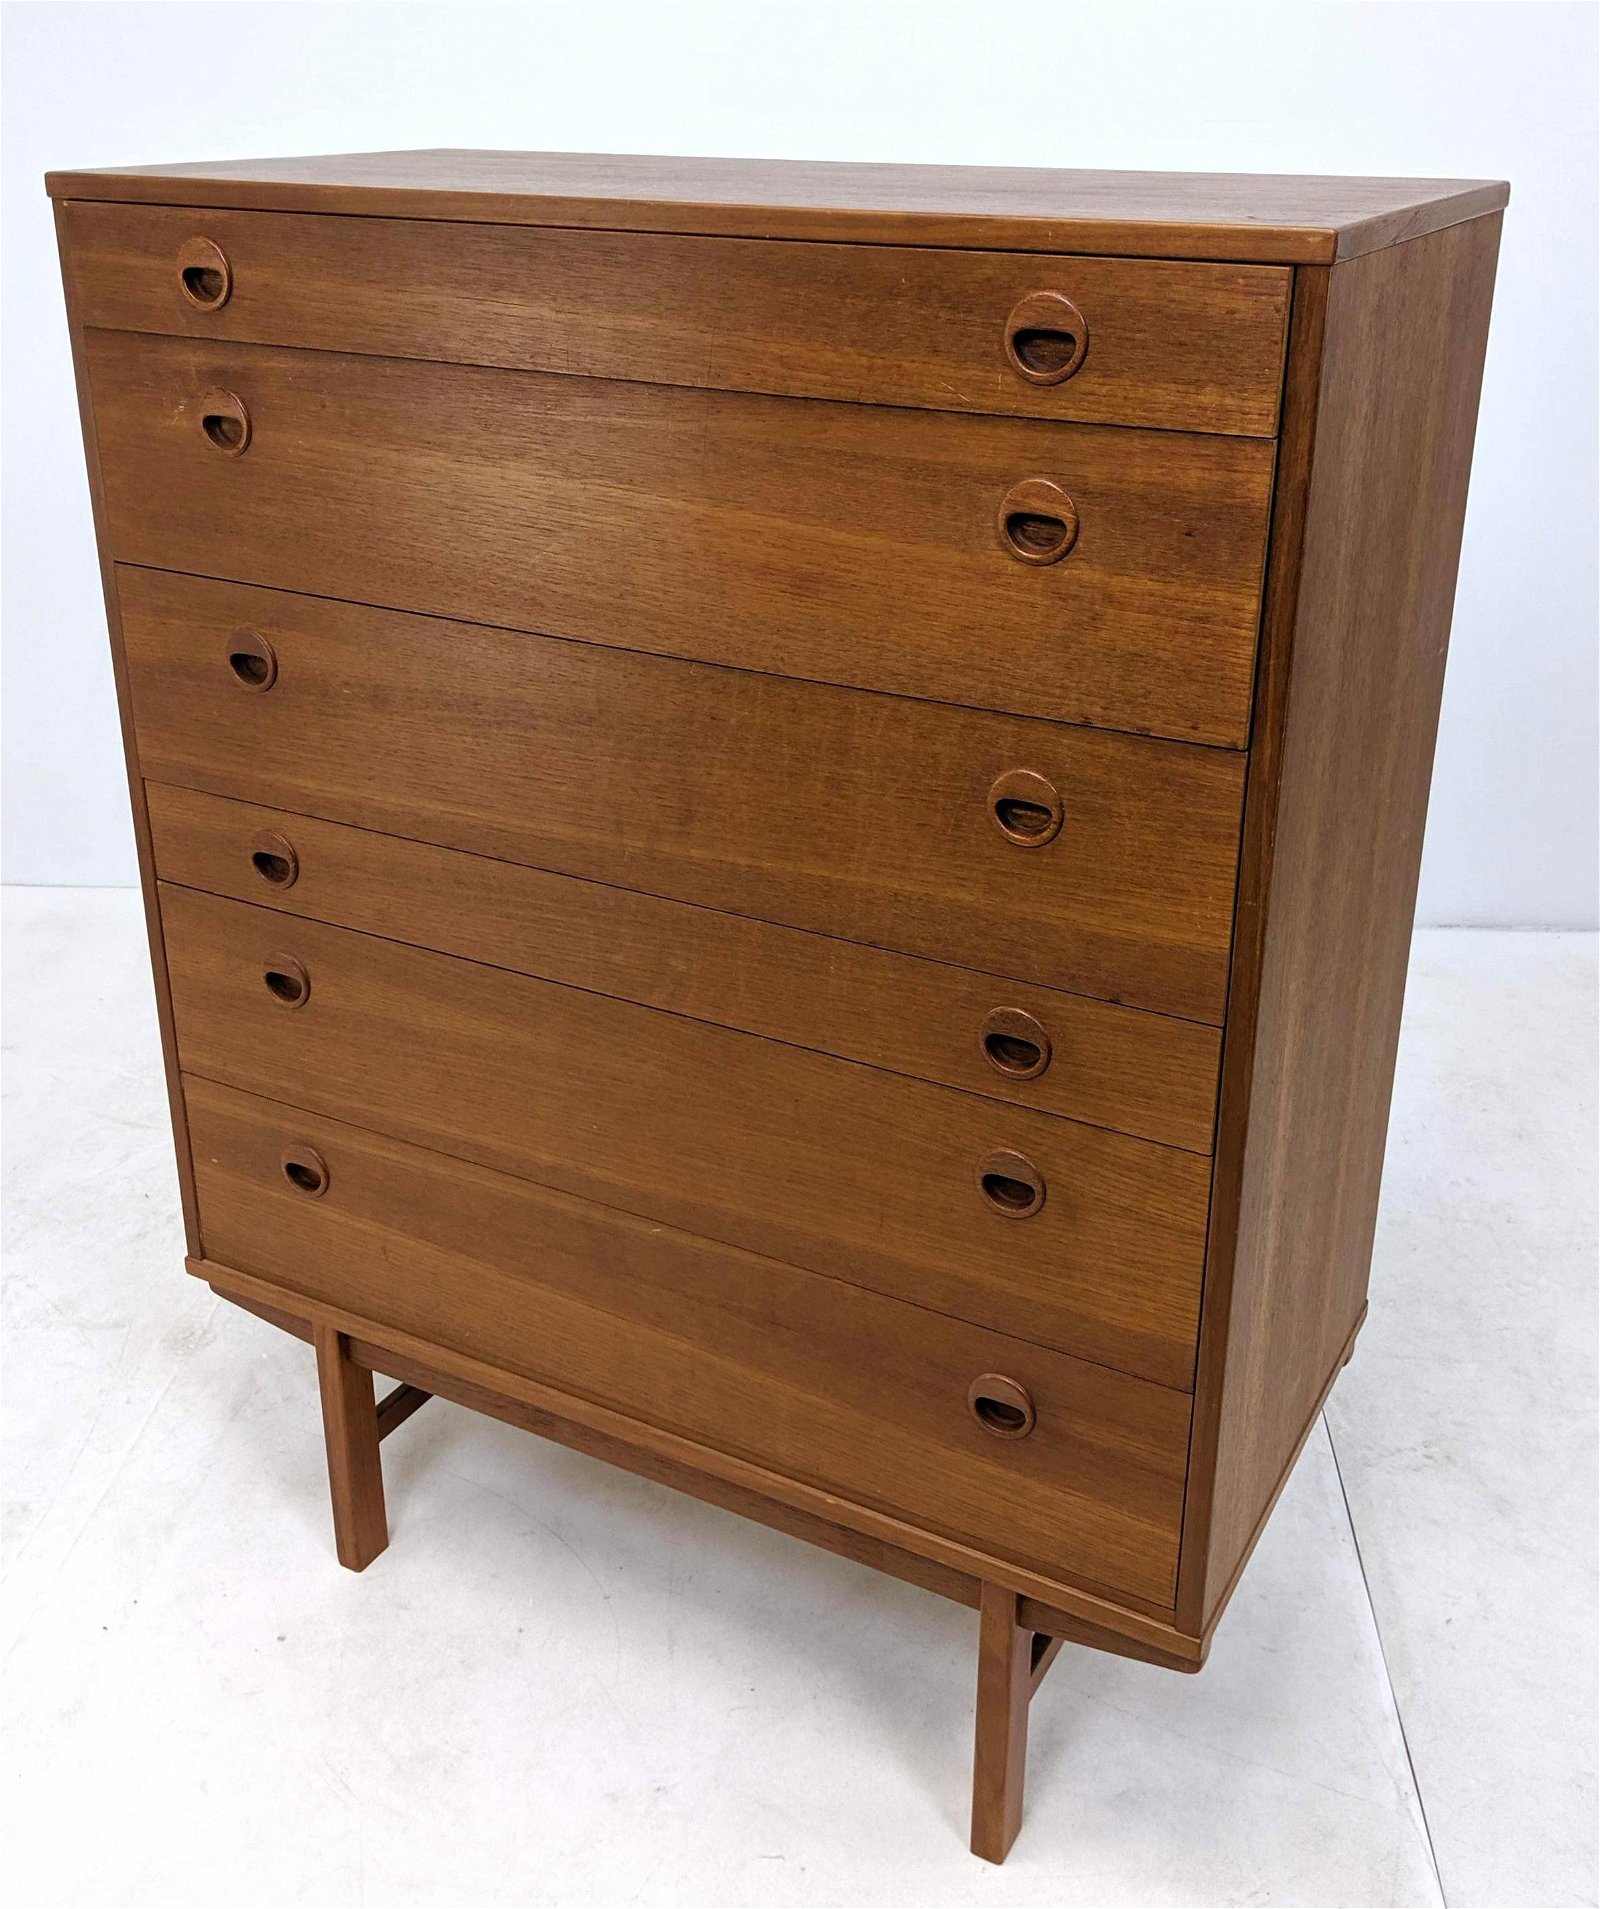 FOLKE OHLSSON Tall Dresser Chest. Danish Modern High